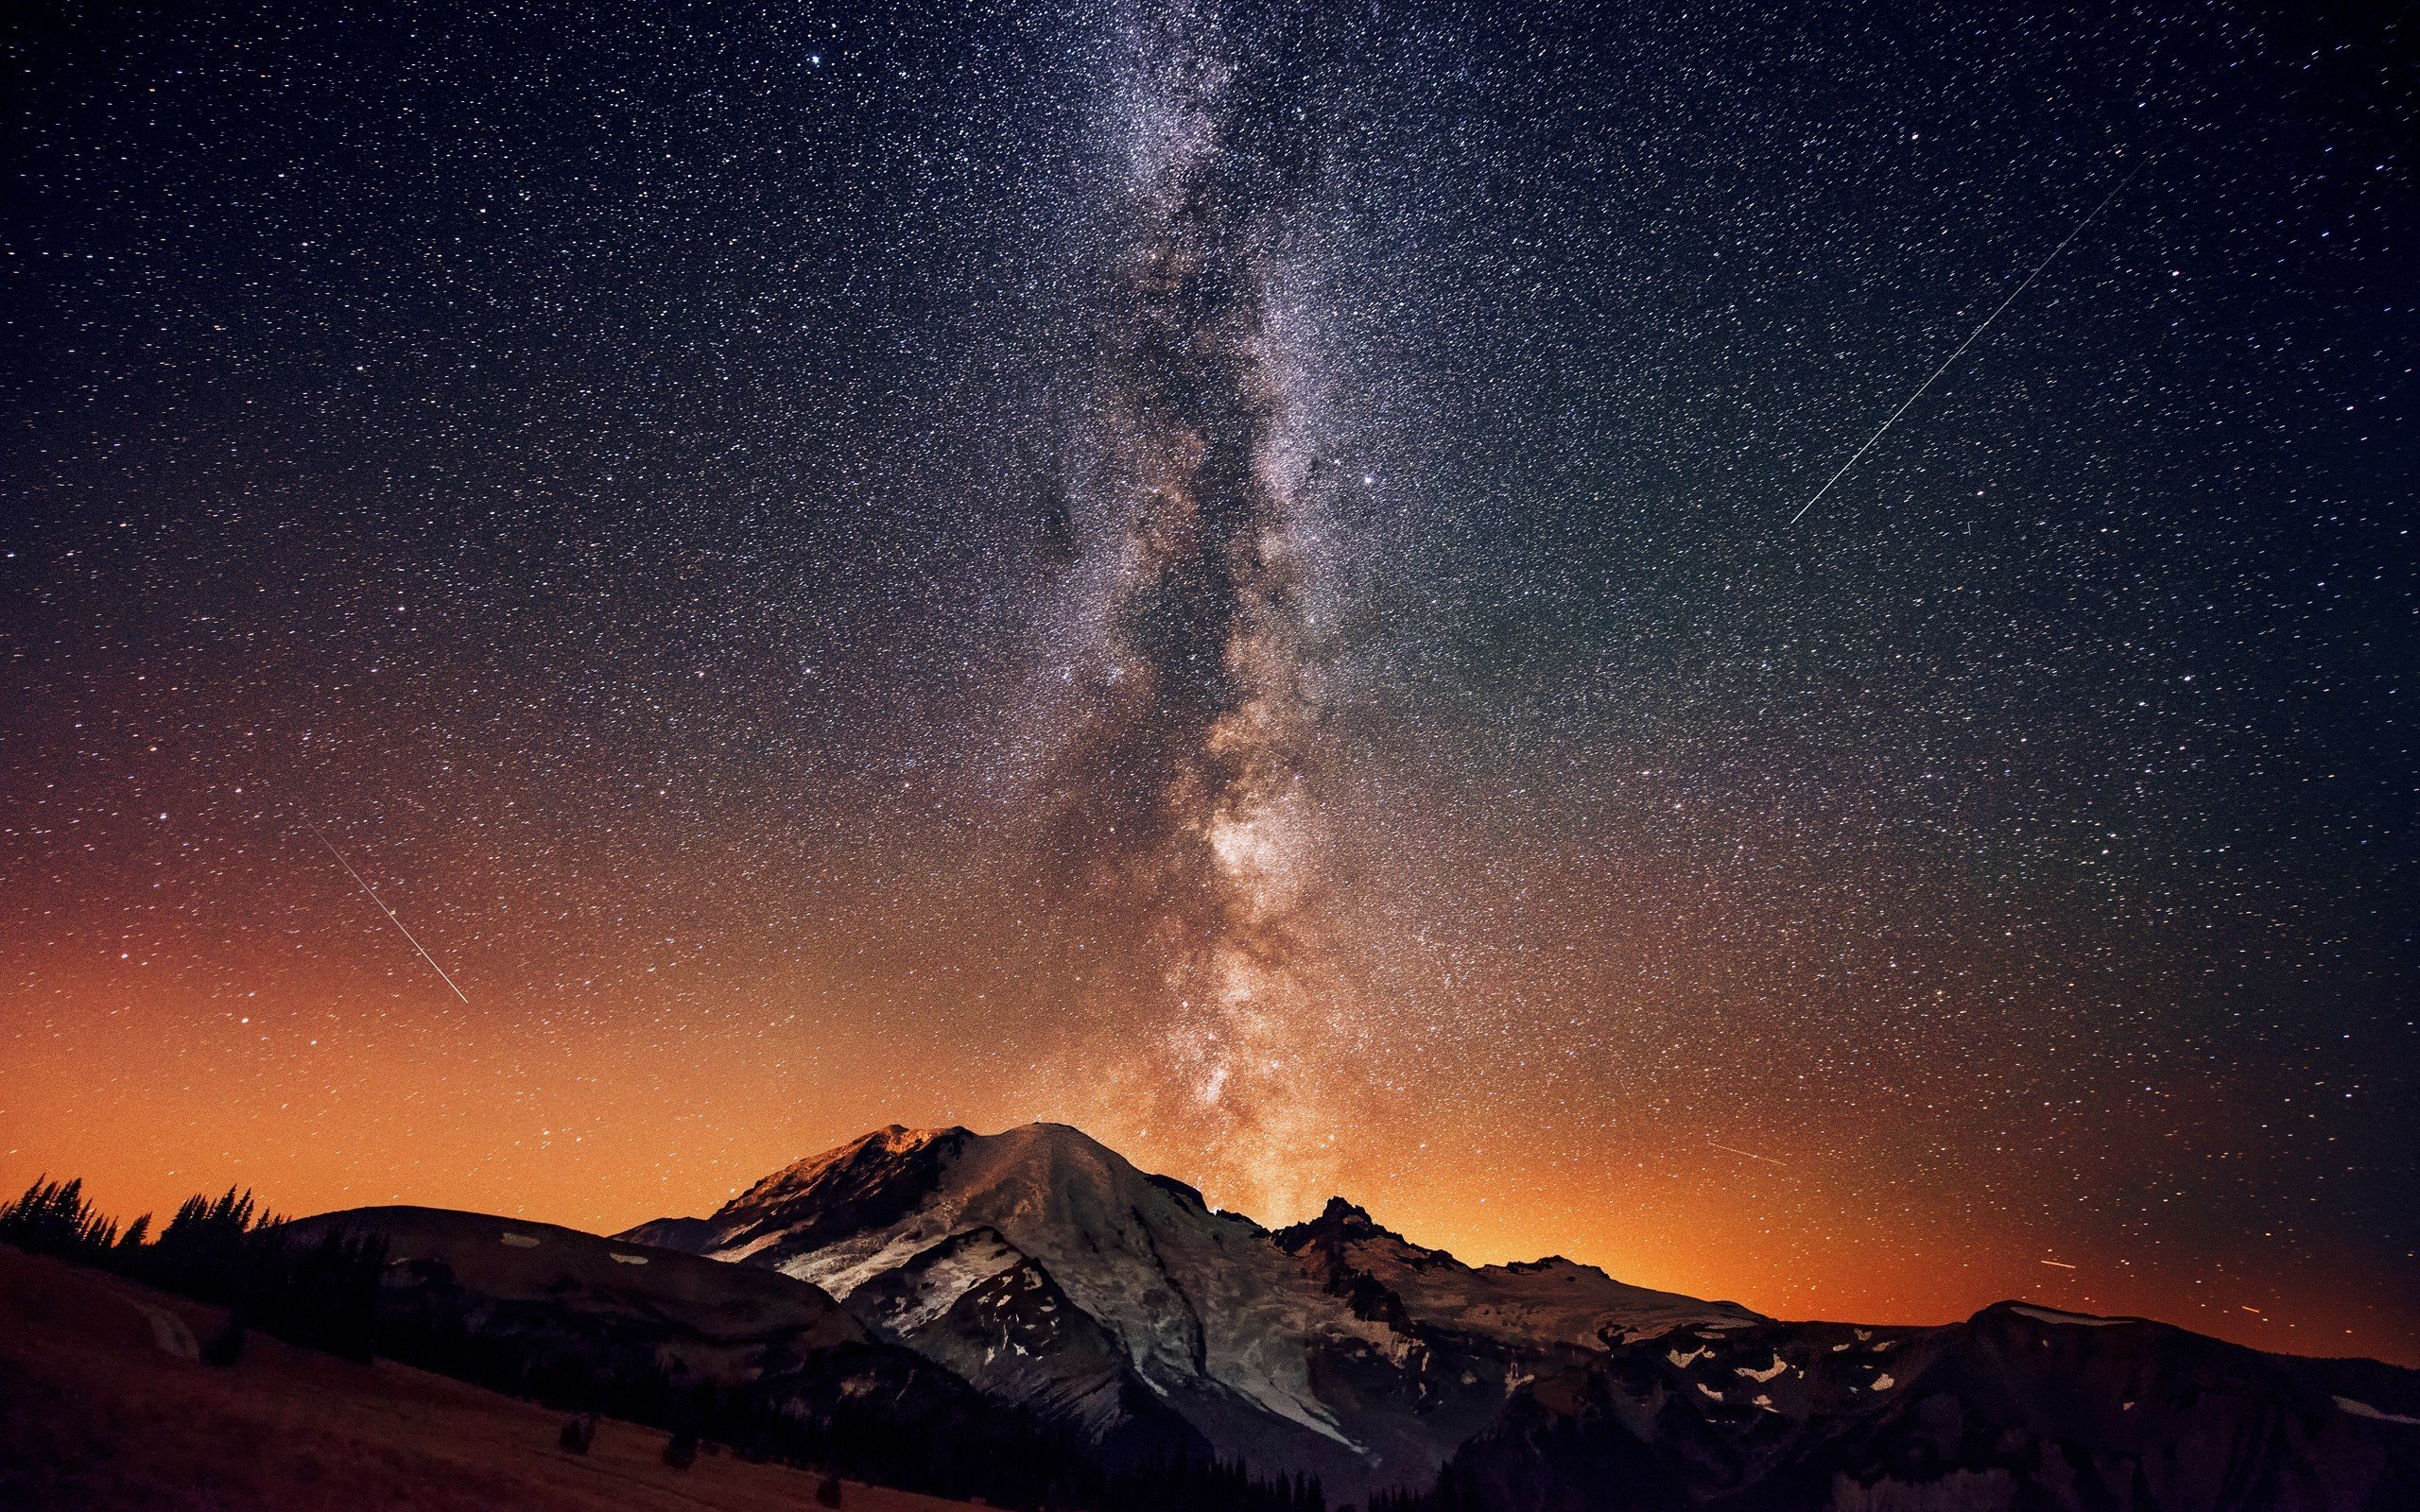 Milky Way Above The Mountains Wallpaper » WallDevil - Best free HD ...